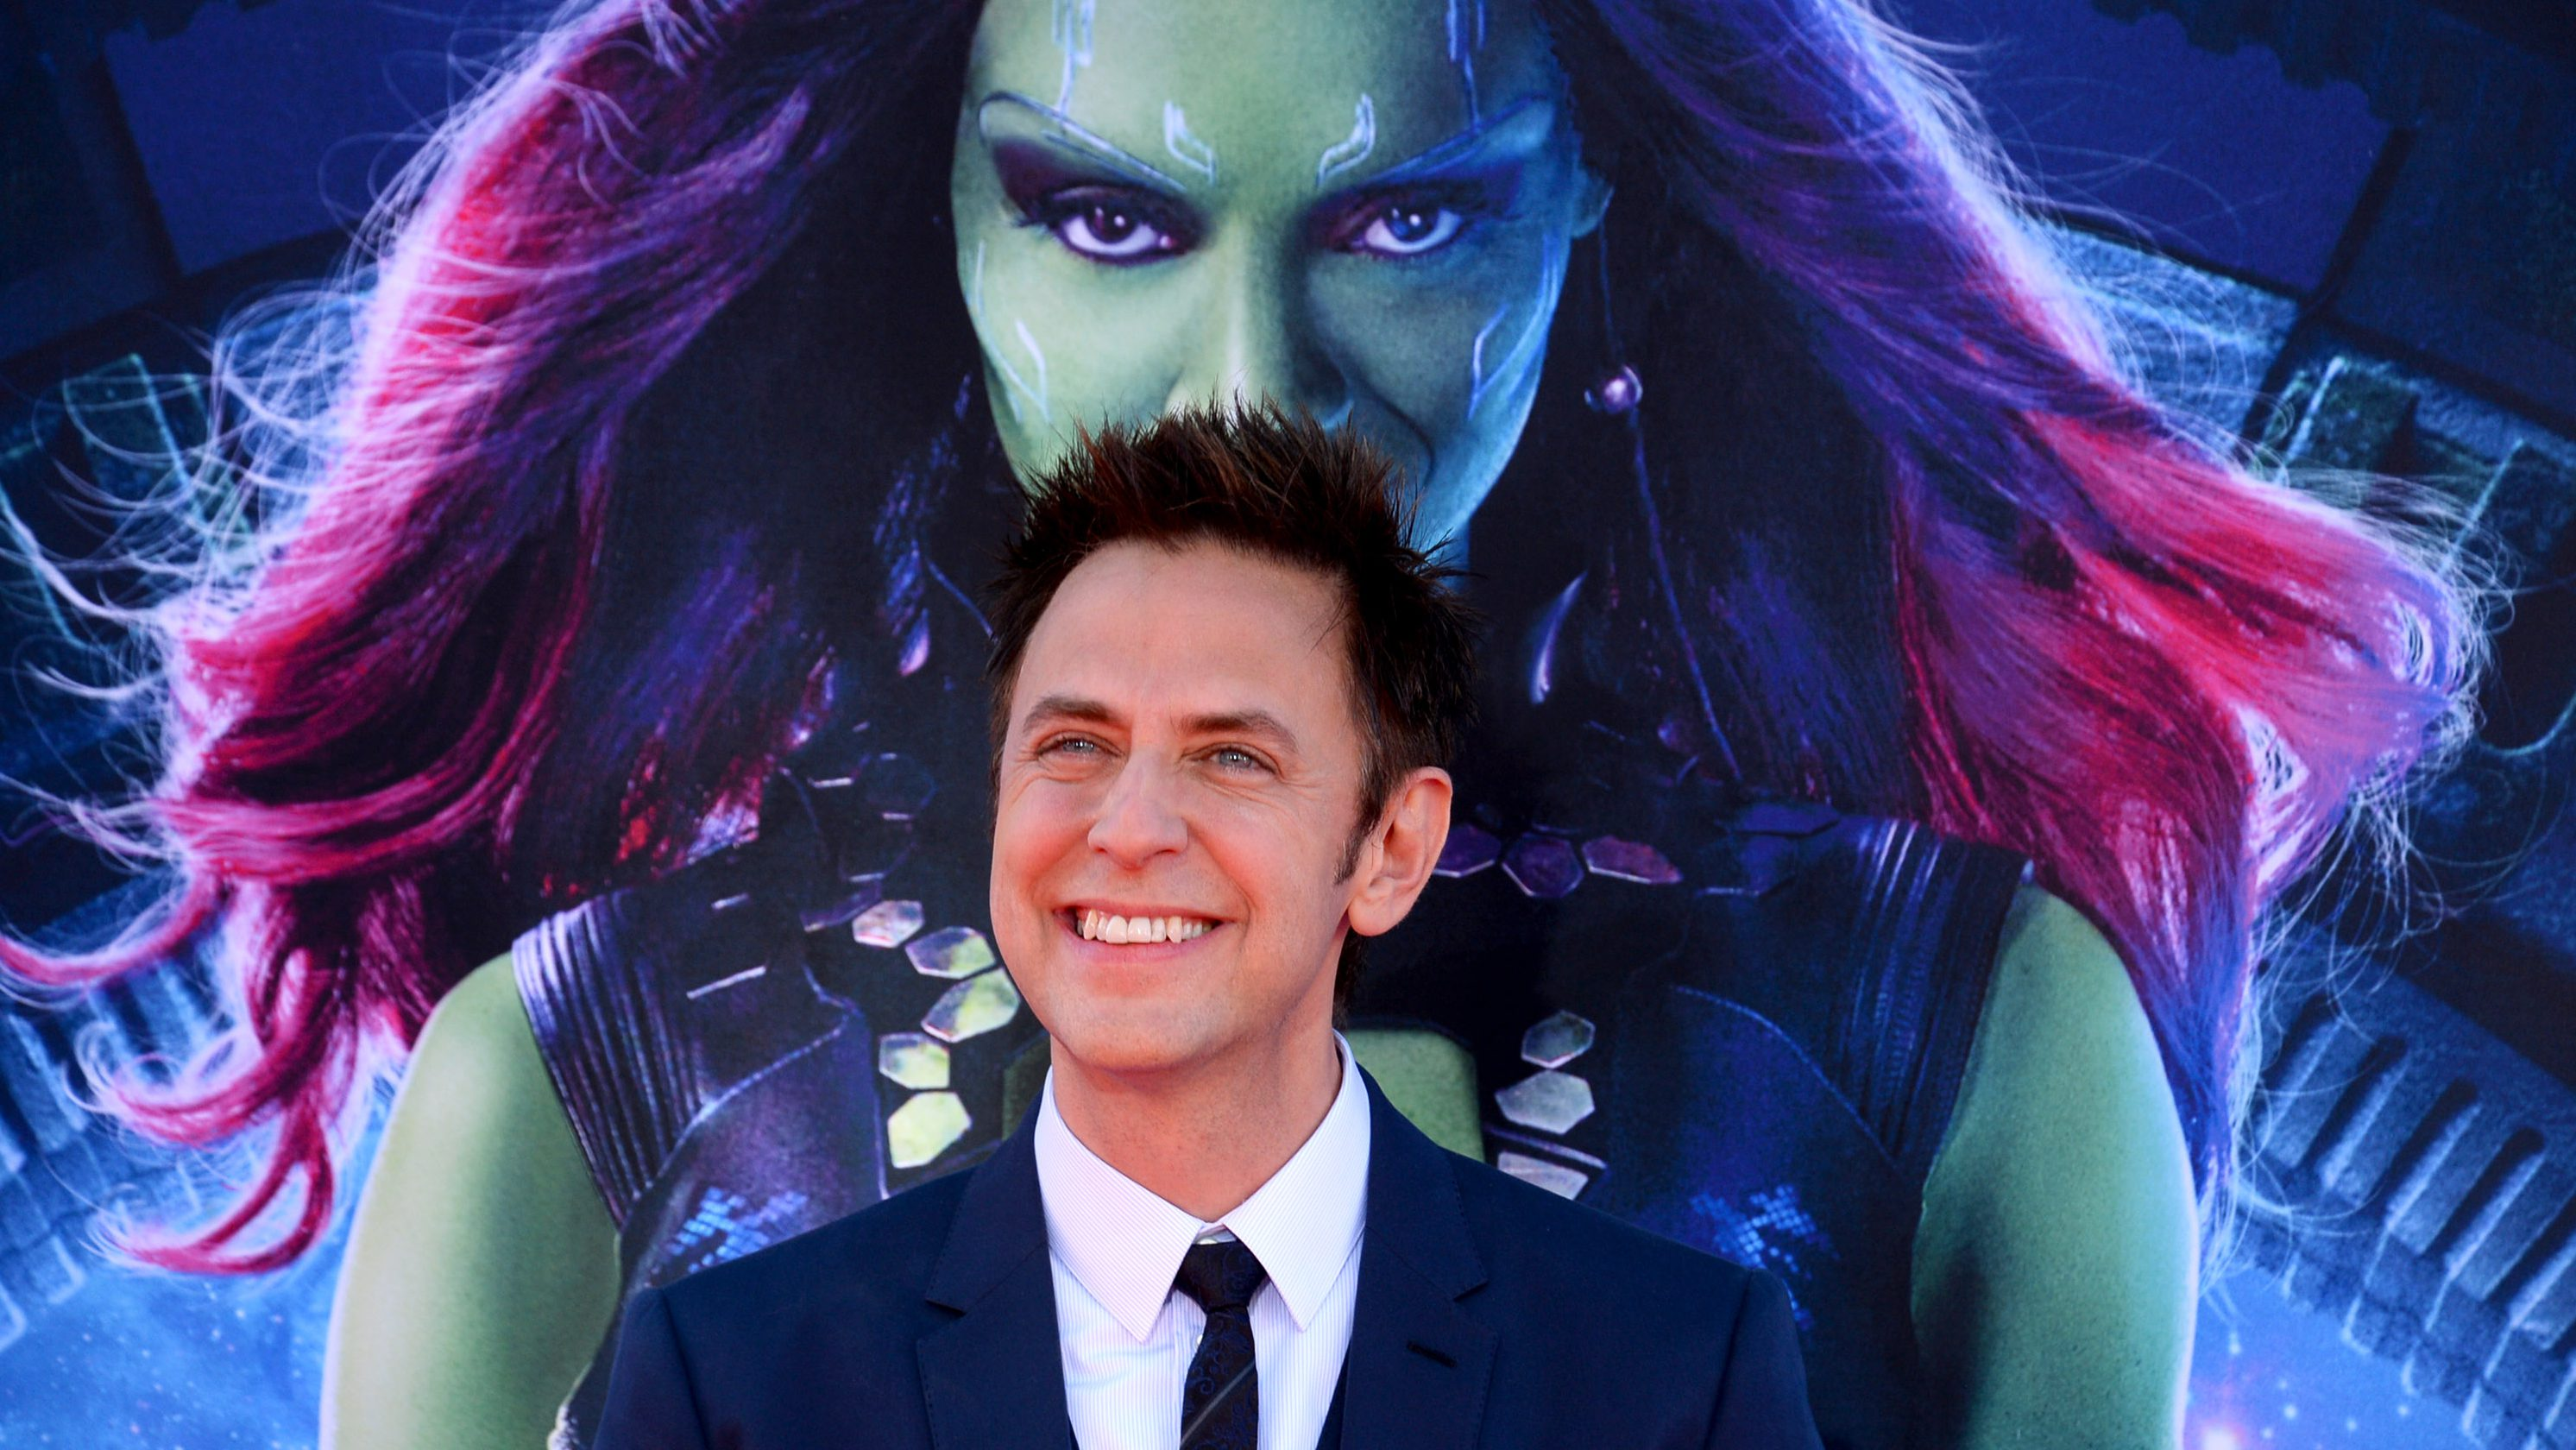 """James Gunn arrives at The Galaxy"""" at El Capitan Theatre on Monday, July 21, 2014, in Los Angeles. (Photo by Jordan Strauss/Invision/AP)"""